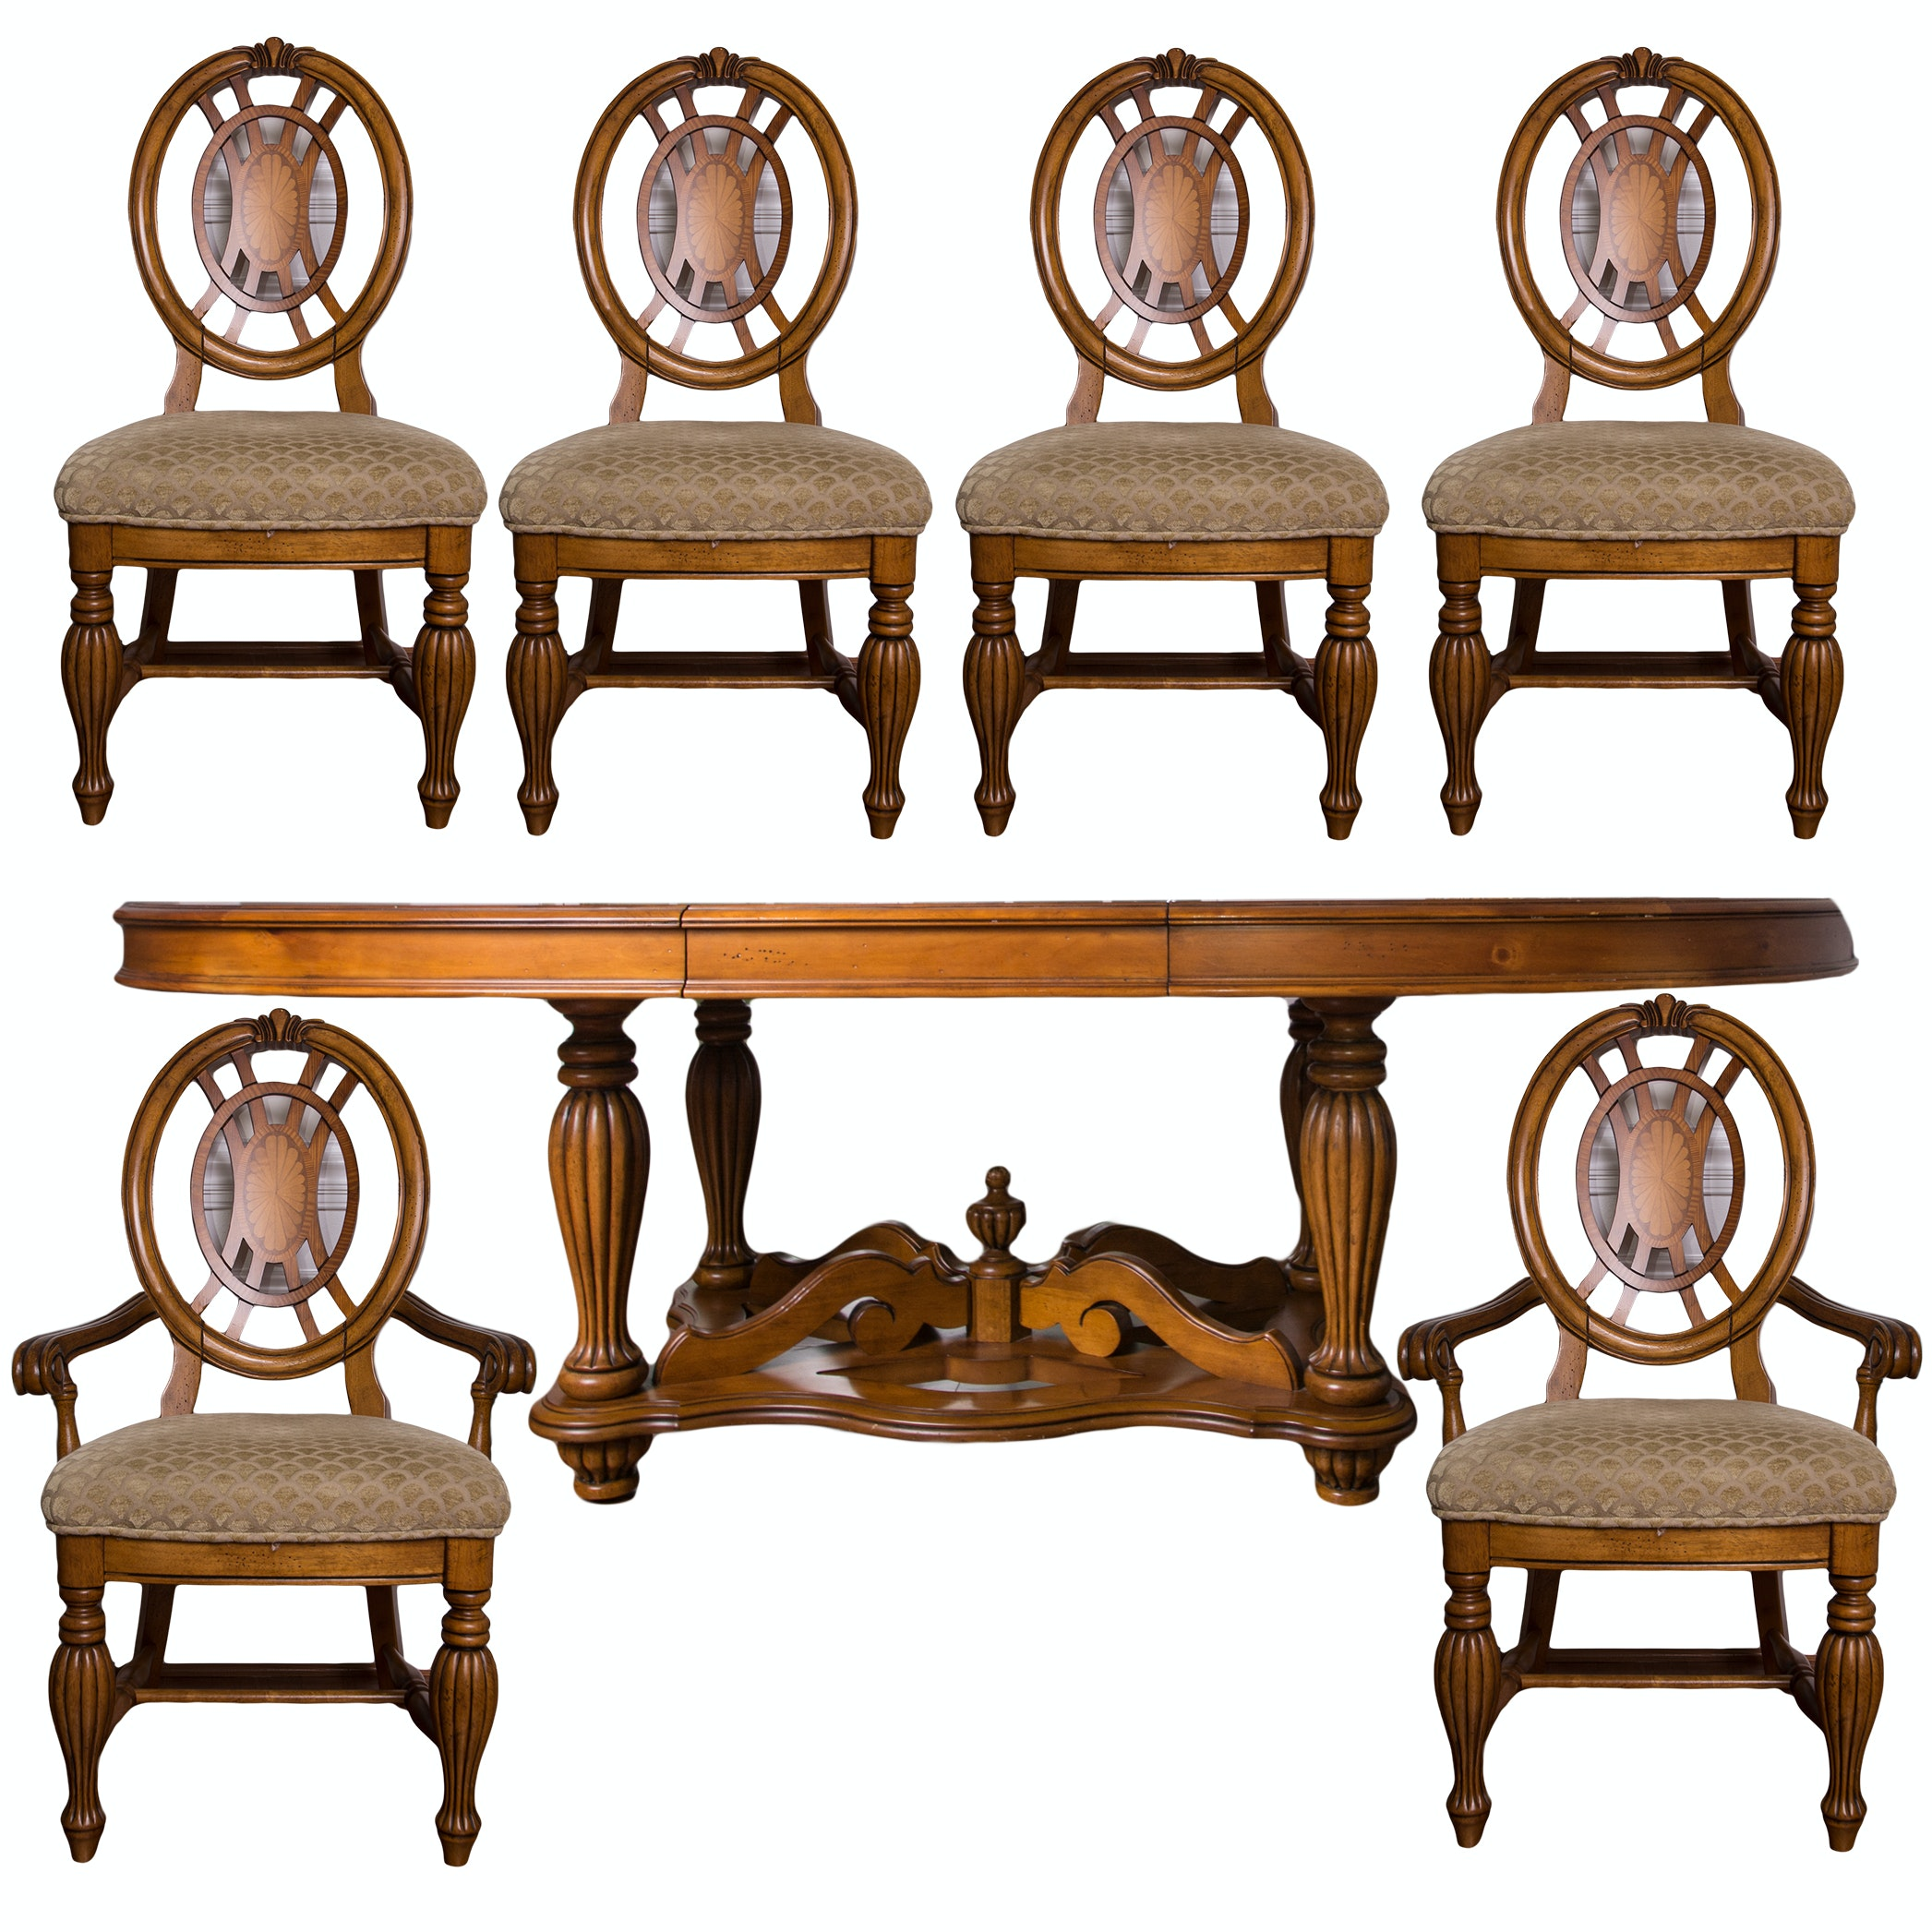 sc 1 st  EBTH.com & Jacobean Revival Style Dining Table and Chairs by American Signature ...